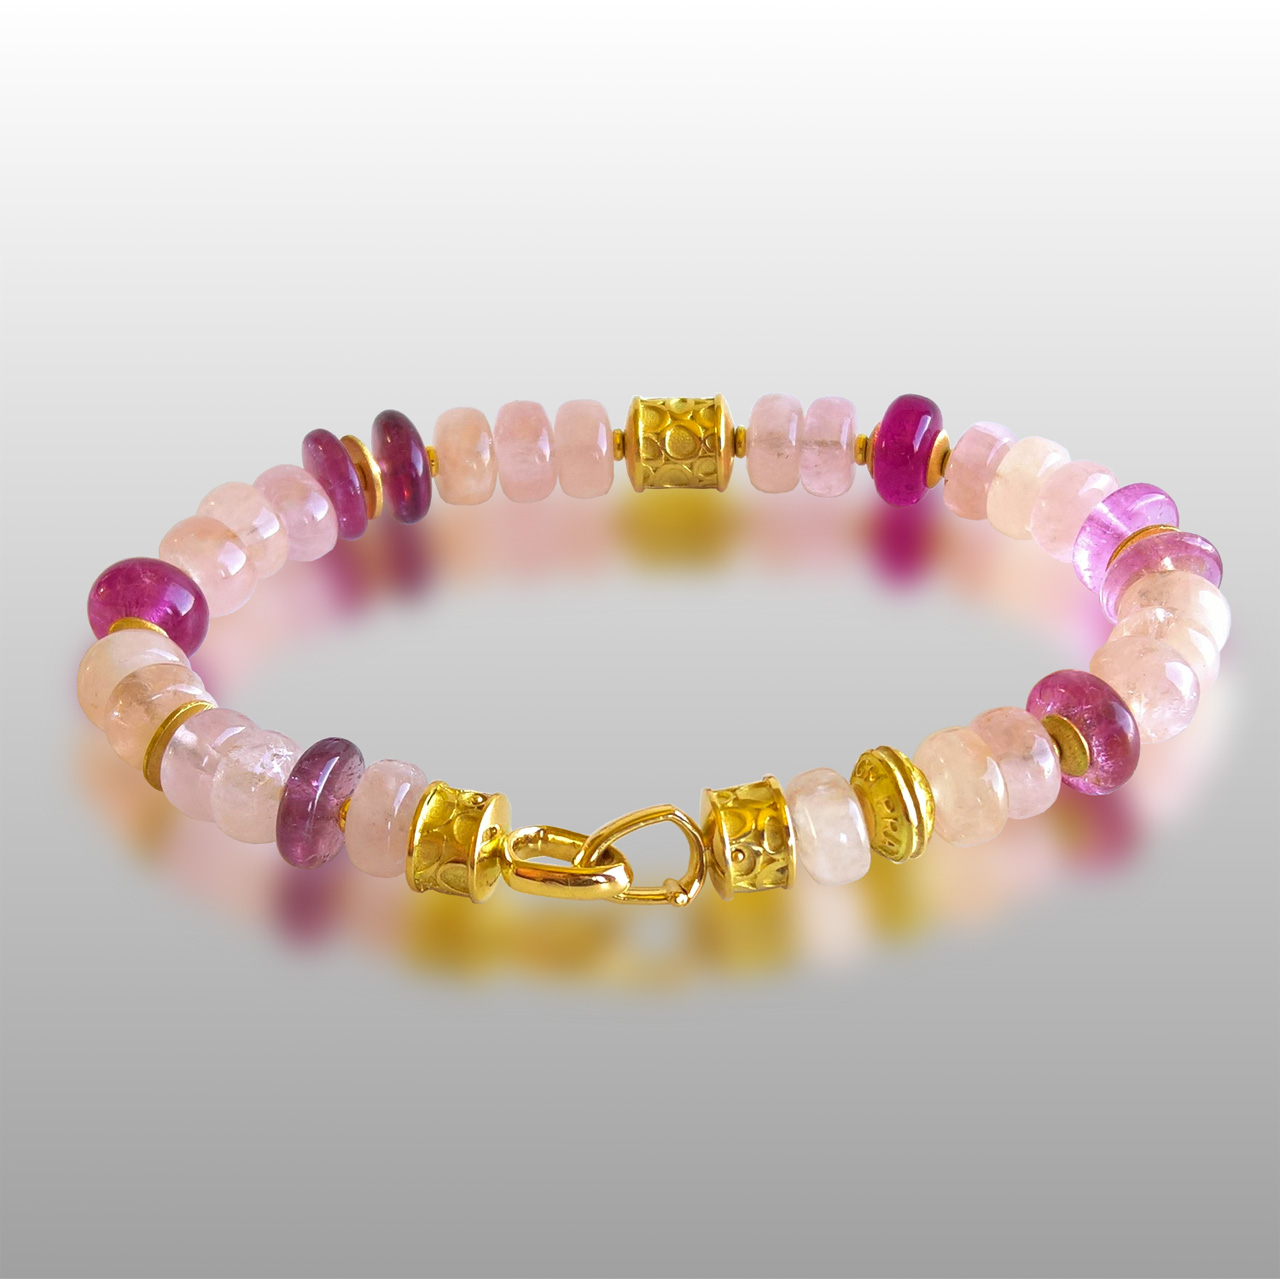 Bracelet made of various shades of pink stones and gold beads and clasp